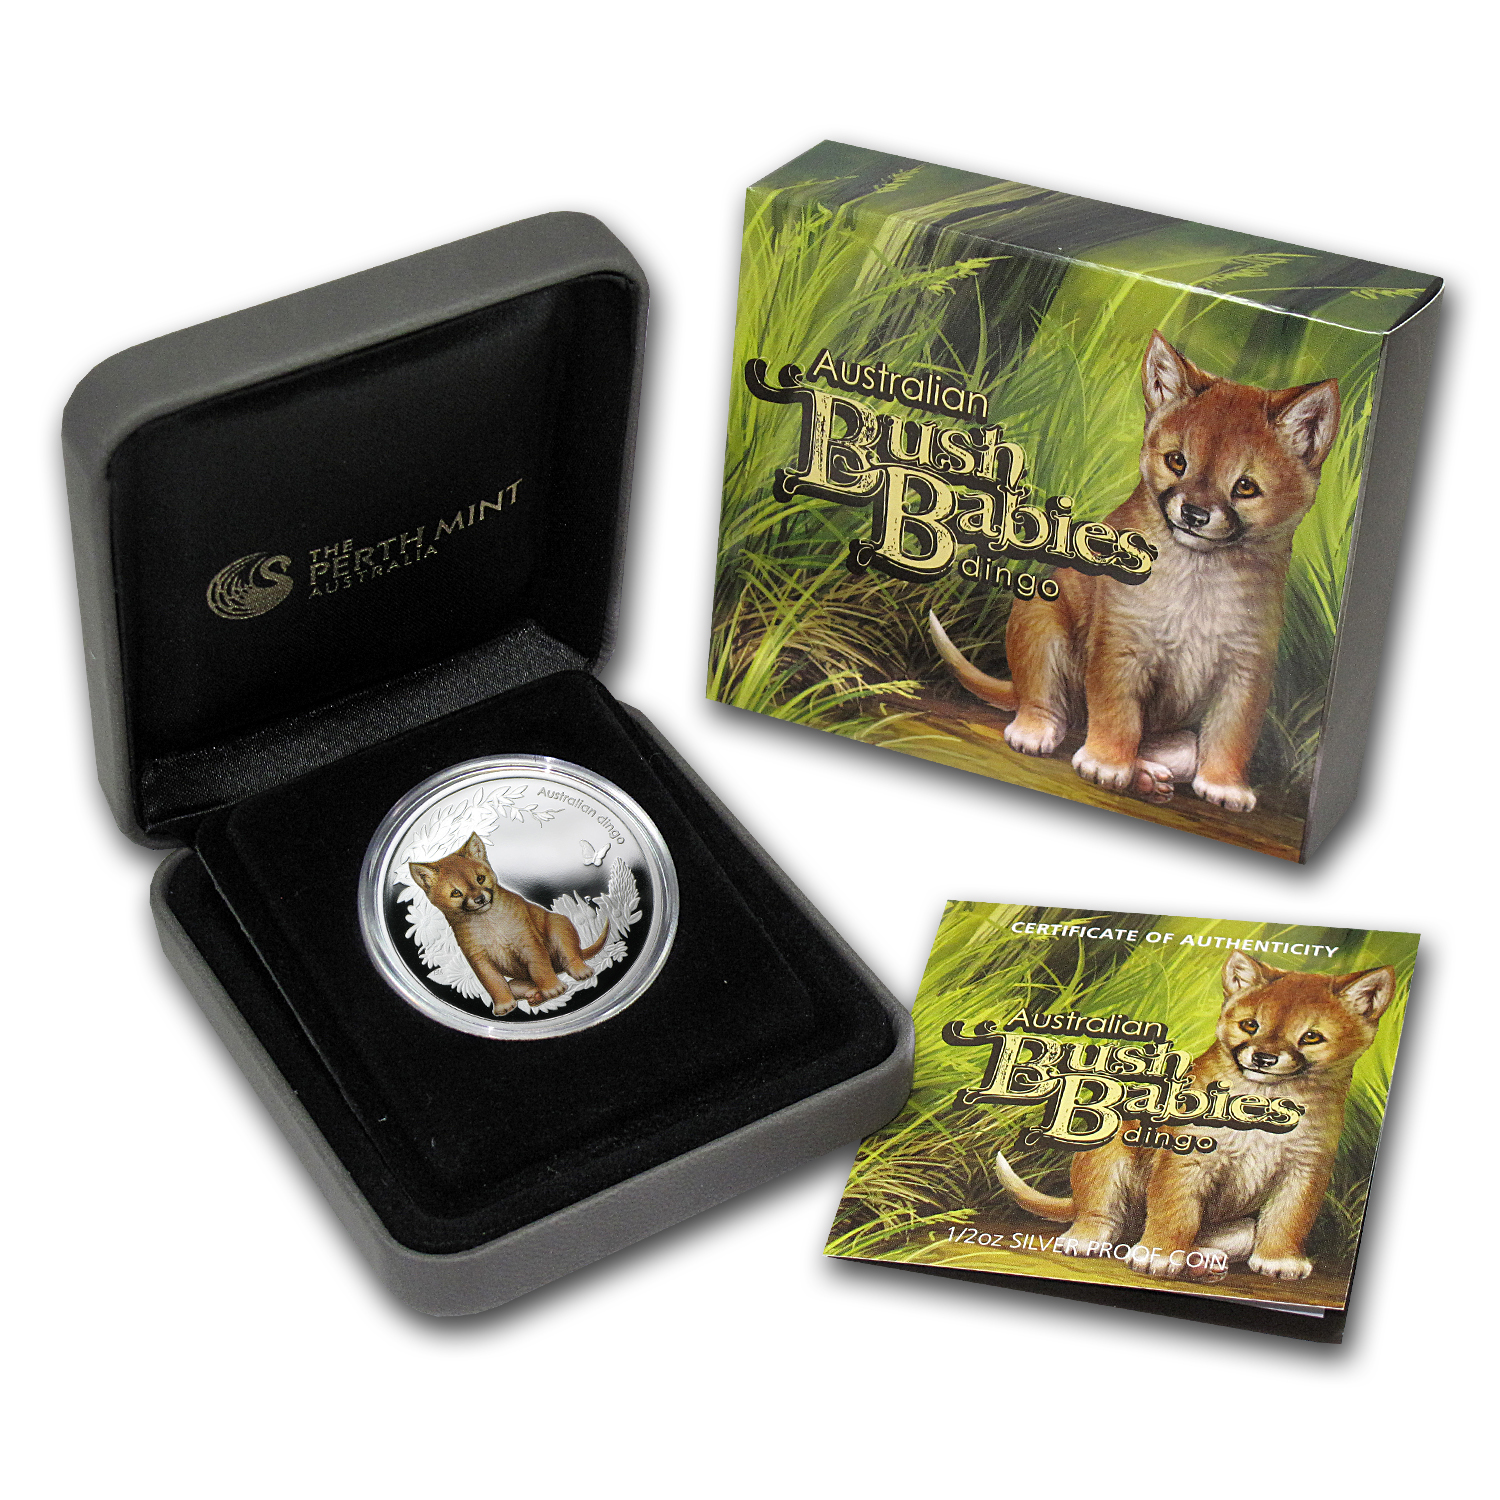 2011 Australia 1/2 oz Silver Bush Babies Dingo Proof